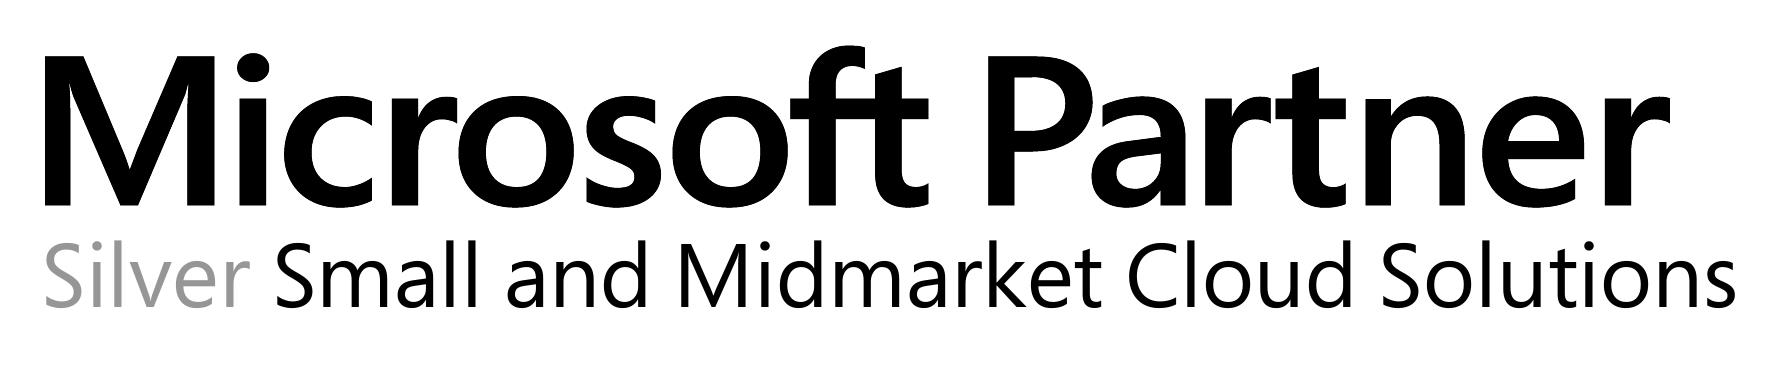 Microsoft Silver Small and Midmarket Cloud Solutions Logo